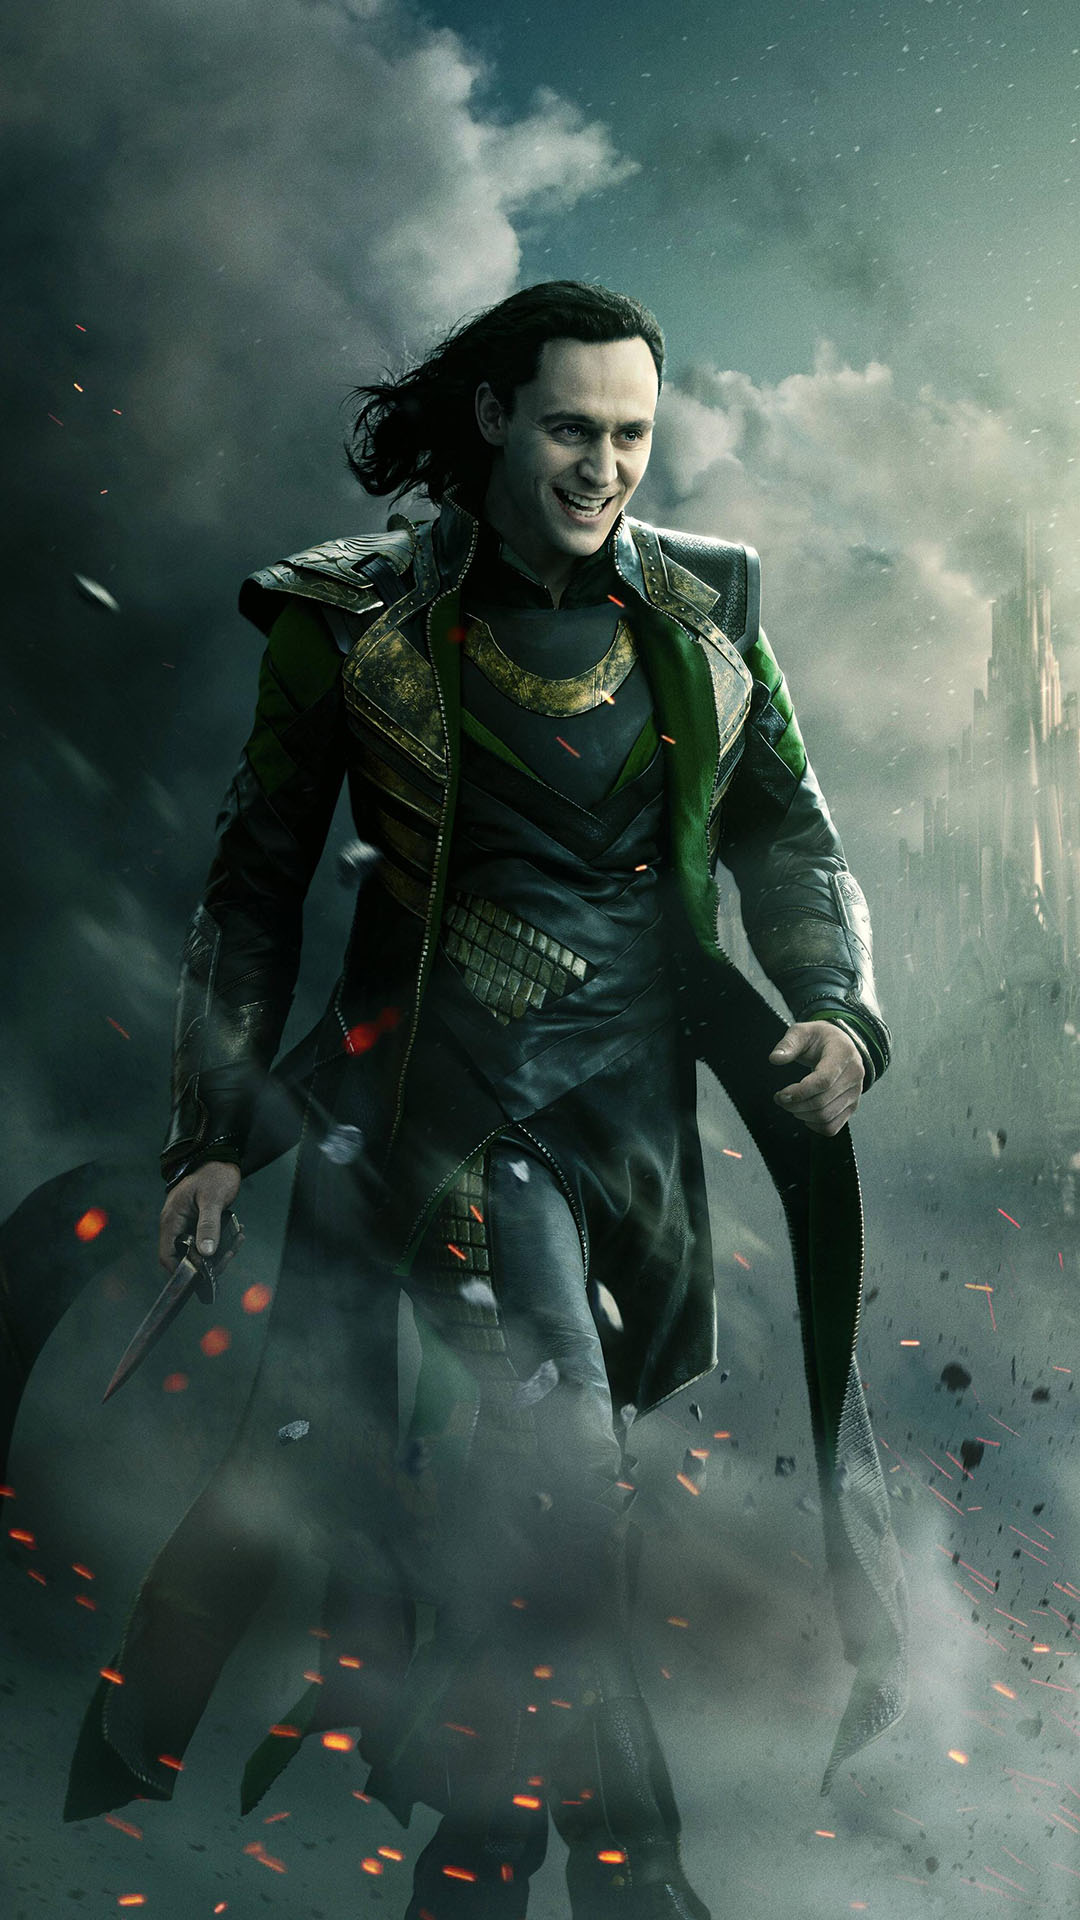 Loki age of ultron best htc one wallpapers - Loki phone wallpaper ...